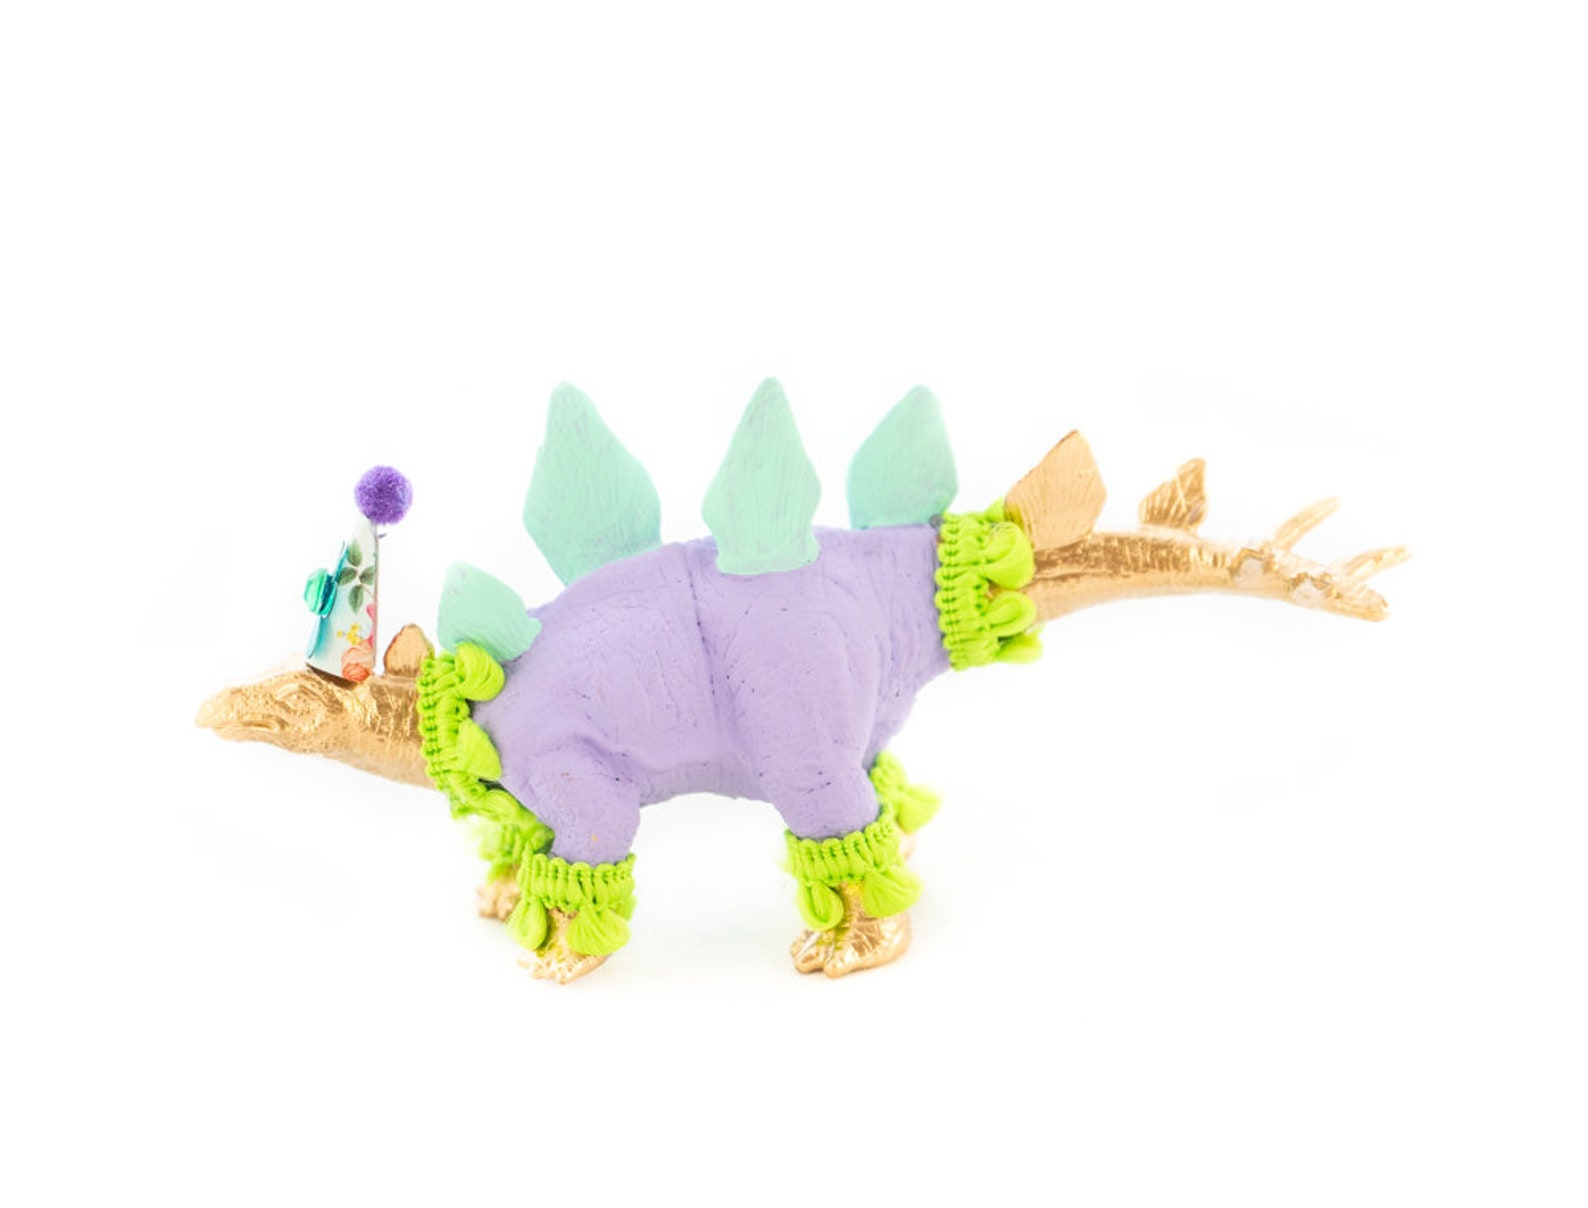 Circus Dinosaur Cake Toppers by Painted Parade